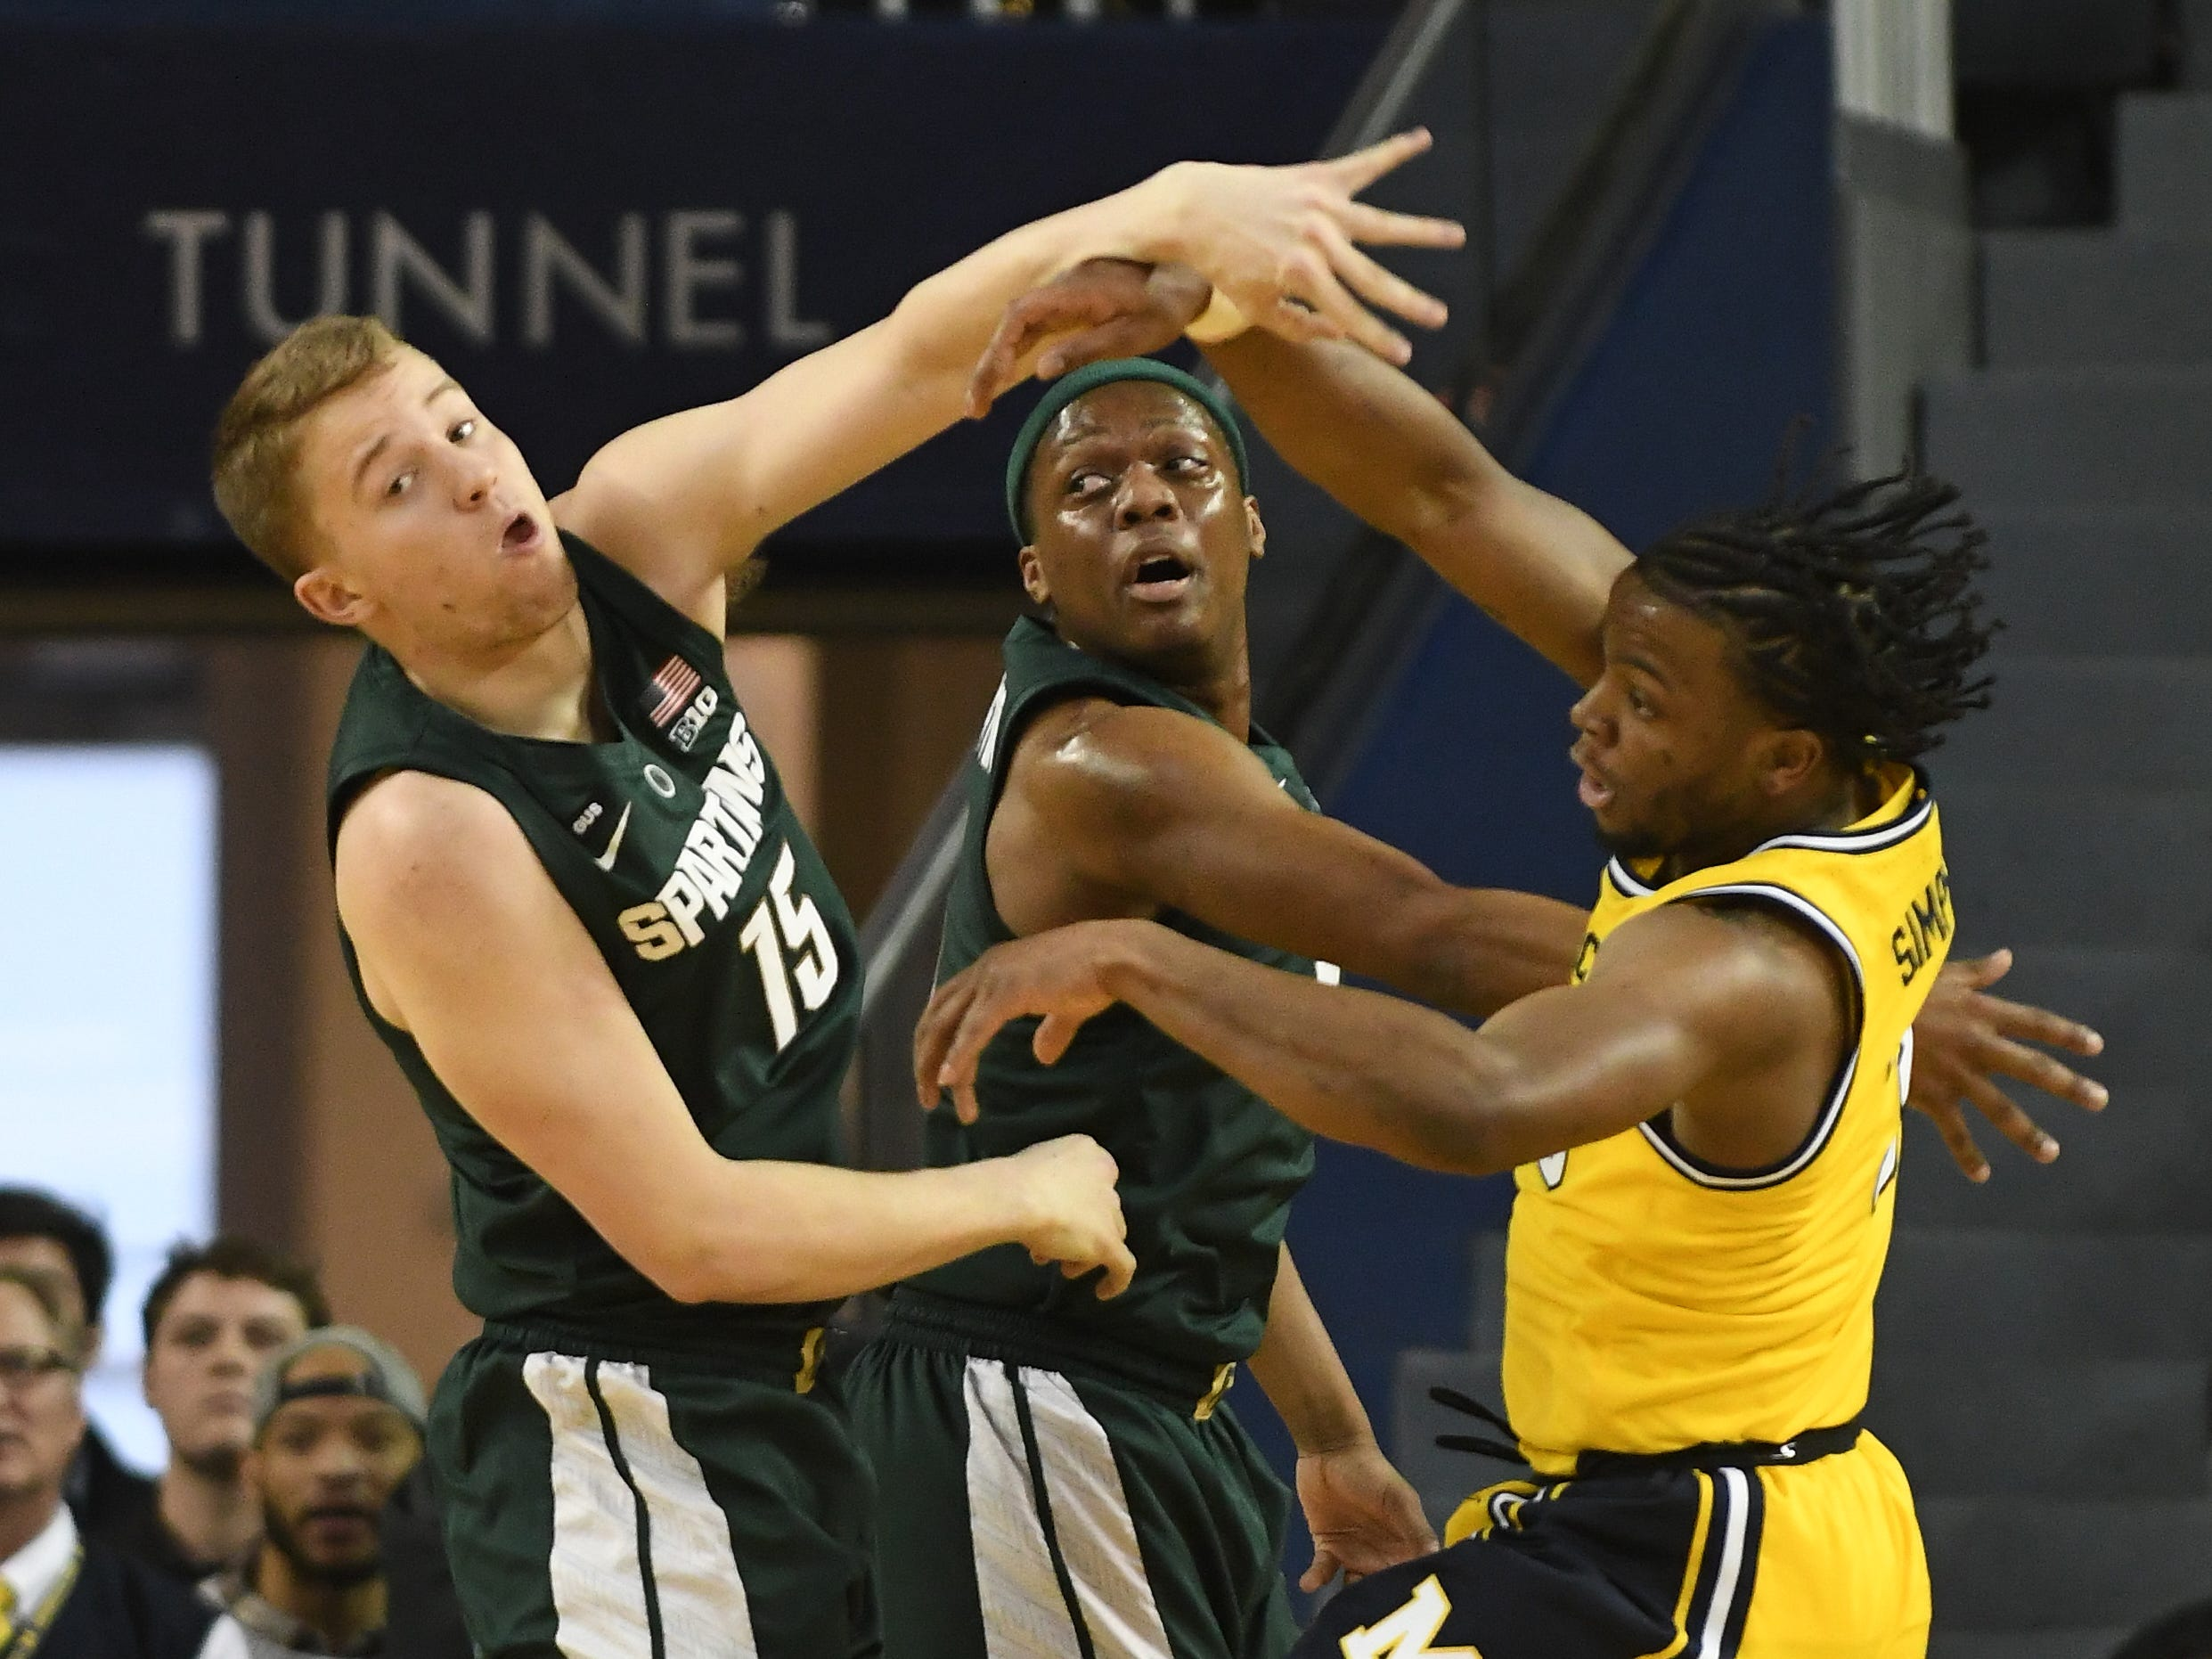 Michigan State's Thomas Kithier and Cassius Winston battle under the basket with Michigan's Zavier Simpson in the first half.